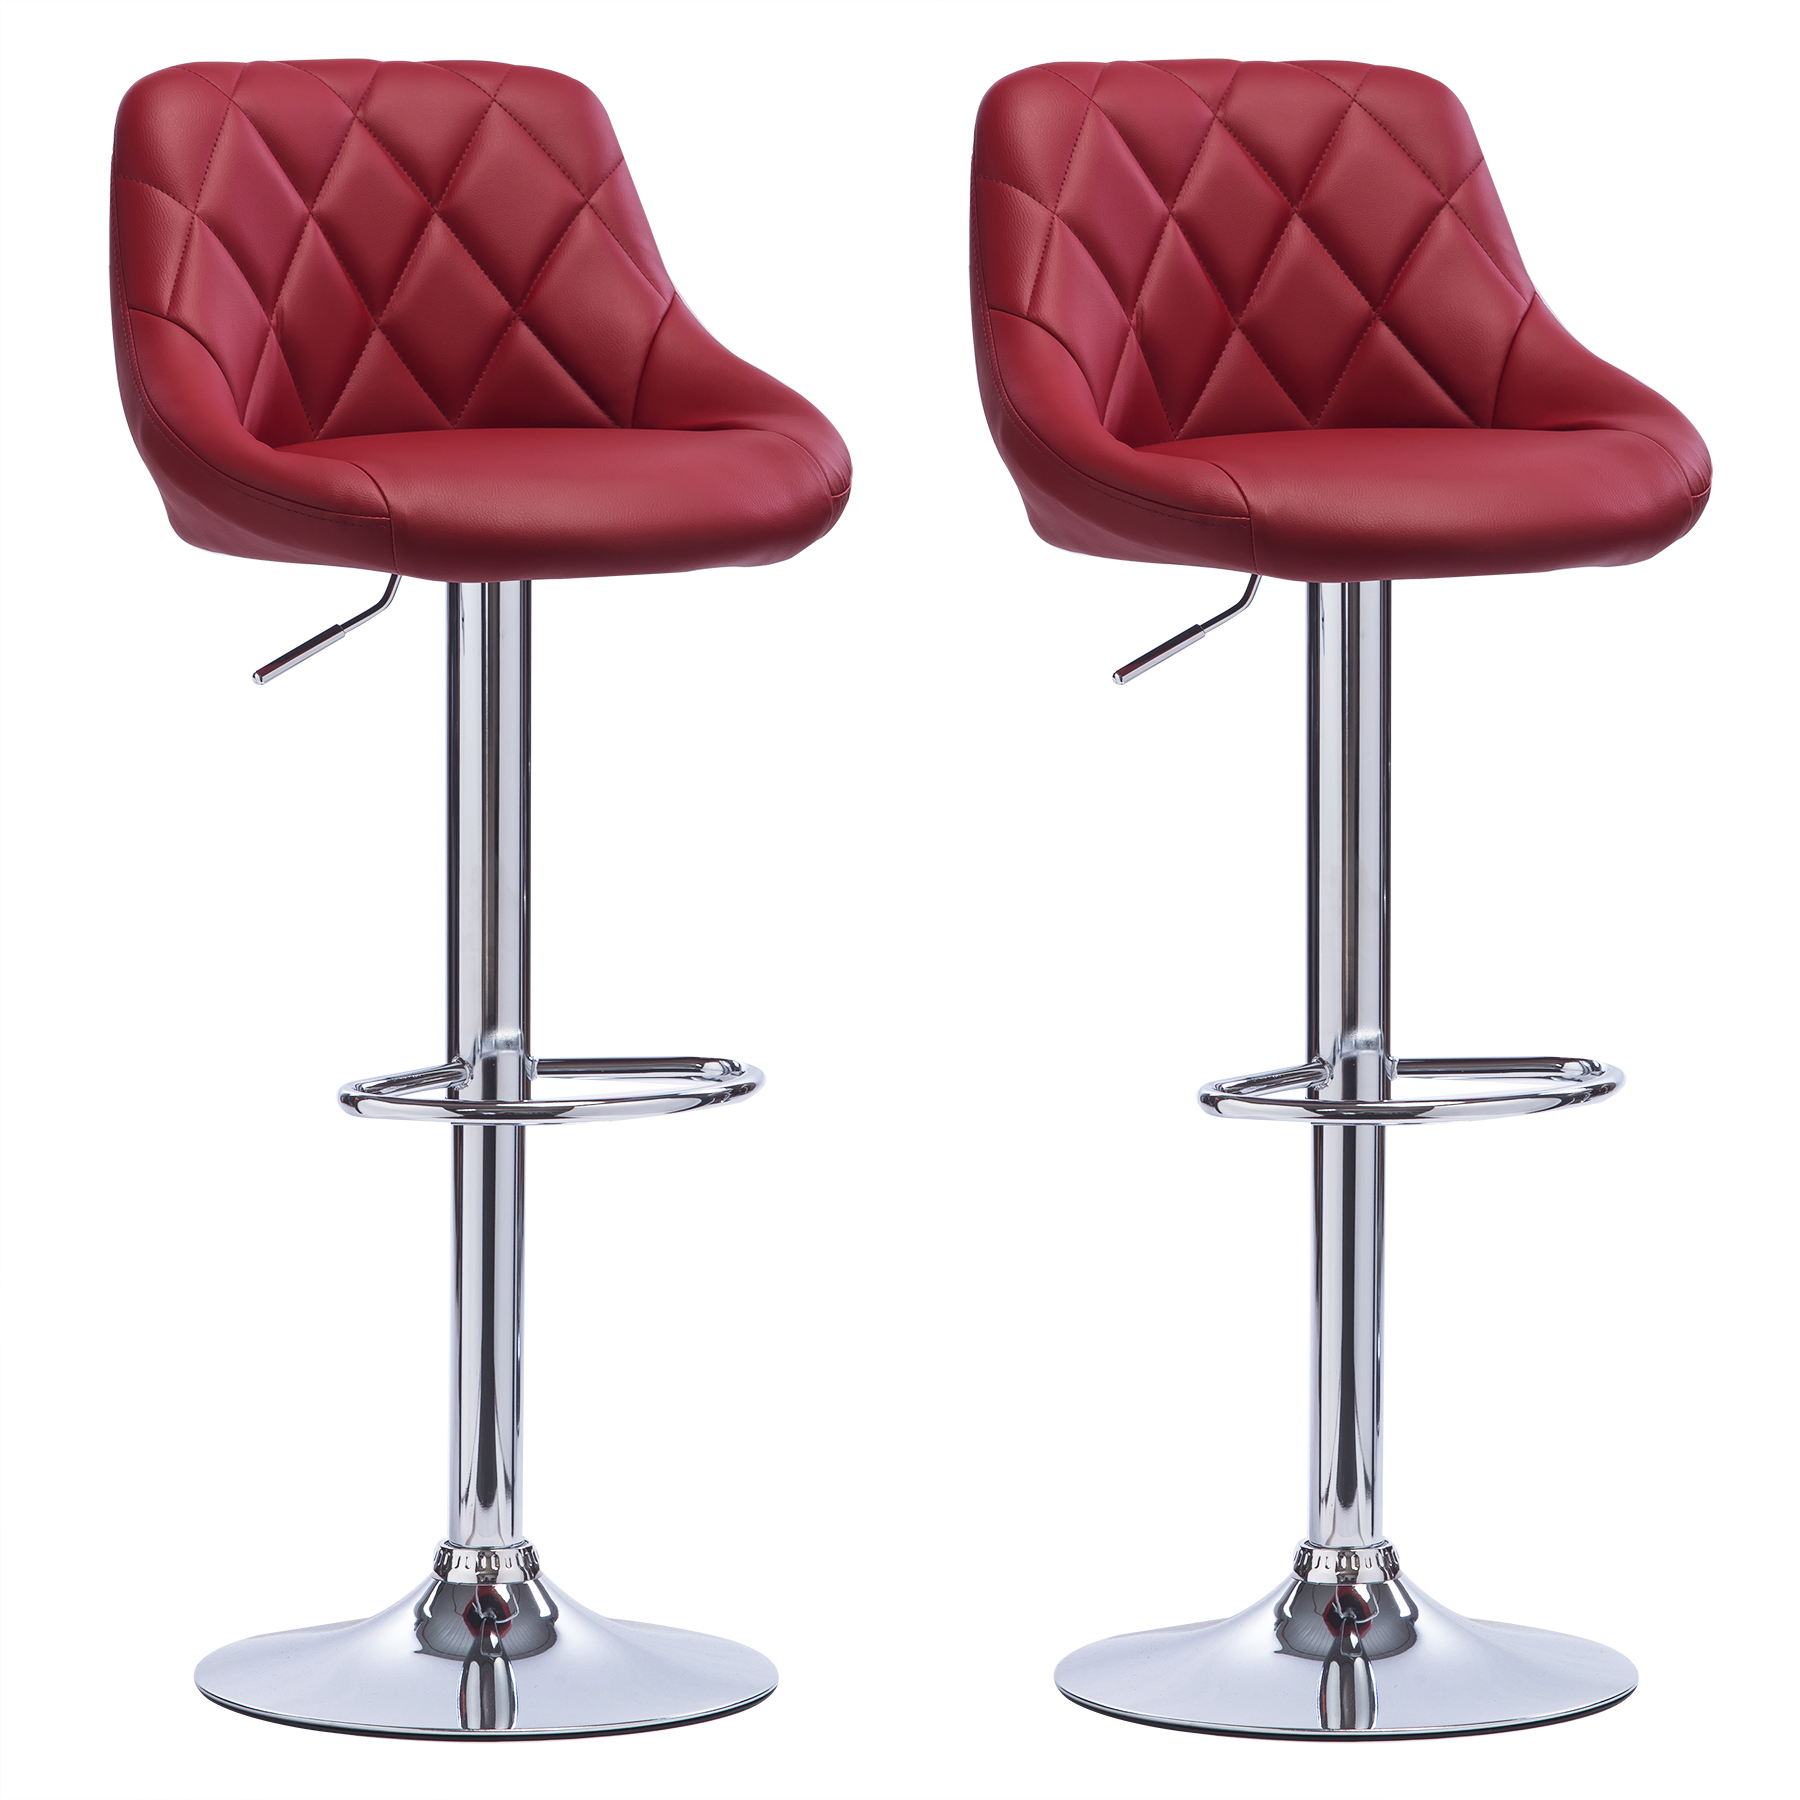 Bar stools faux leather set of 2 kitchen breakfast bar for Kitchen and bar stools